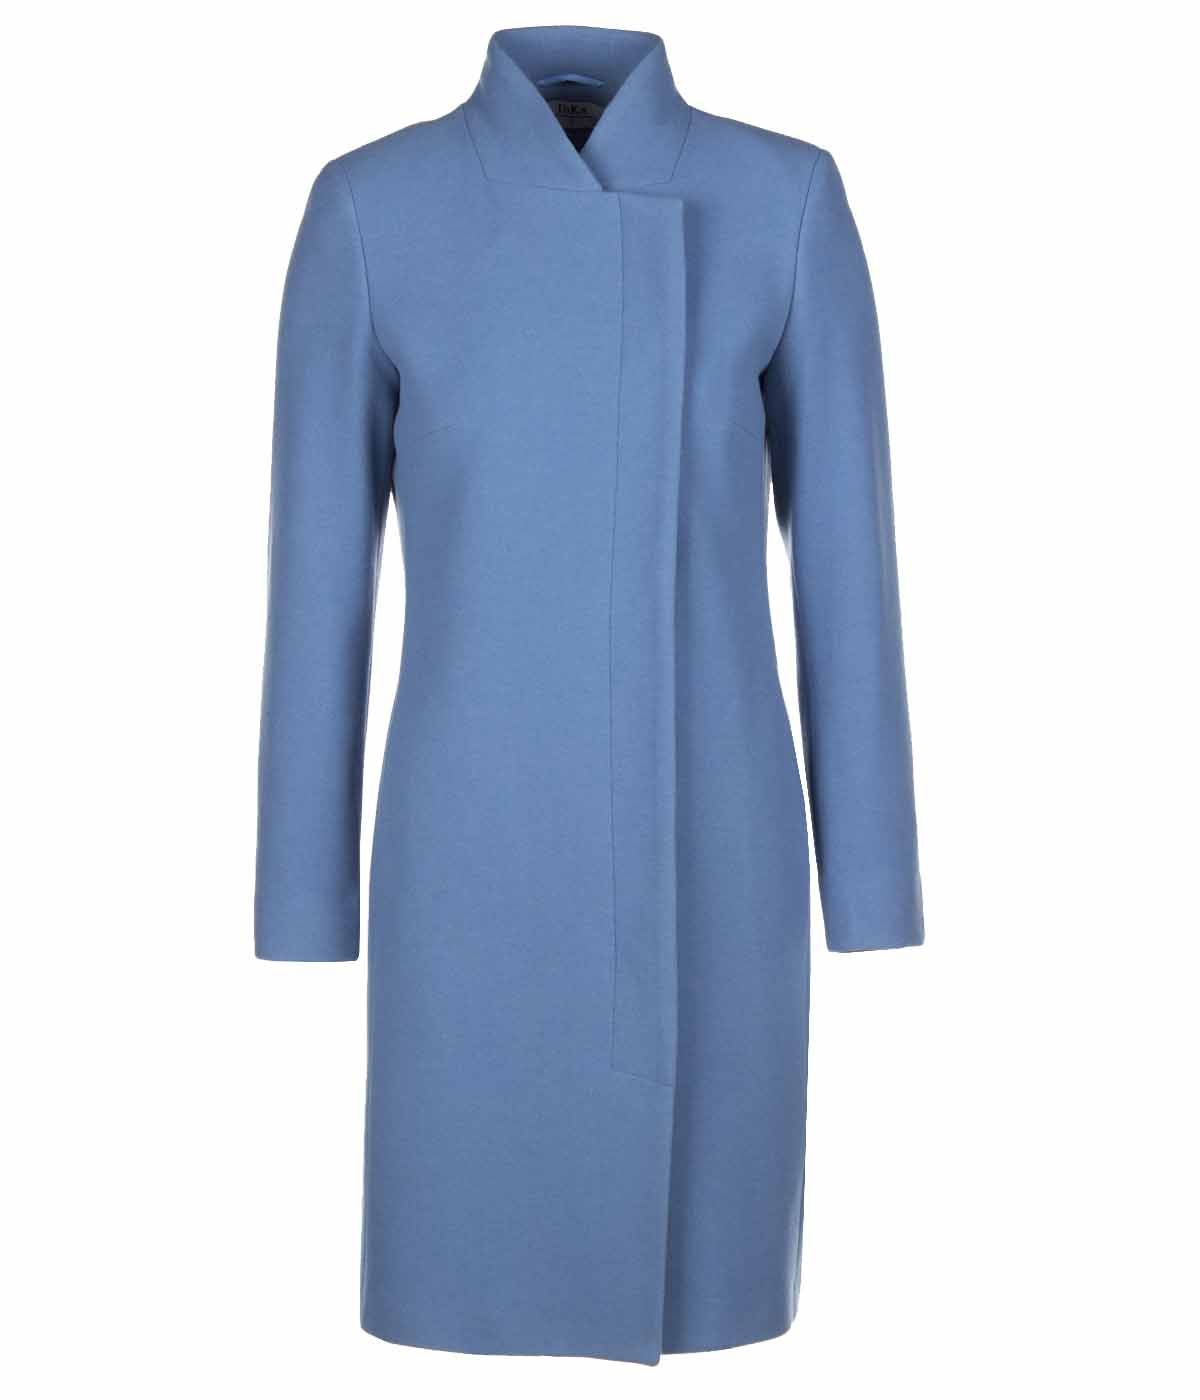 BLUE WOOL COAT WITH SIDED CONCEALED CLOSURE 0